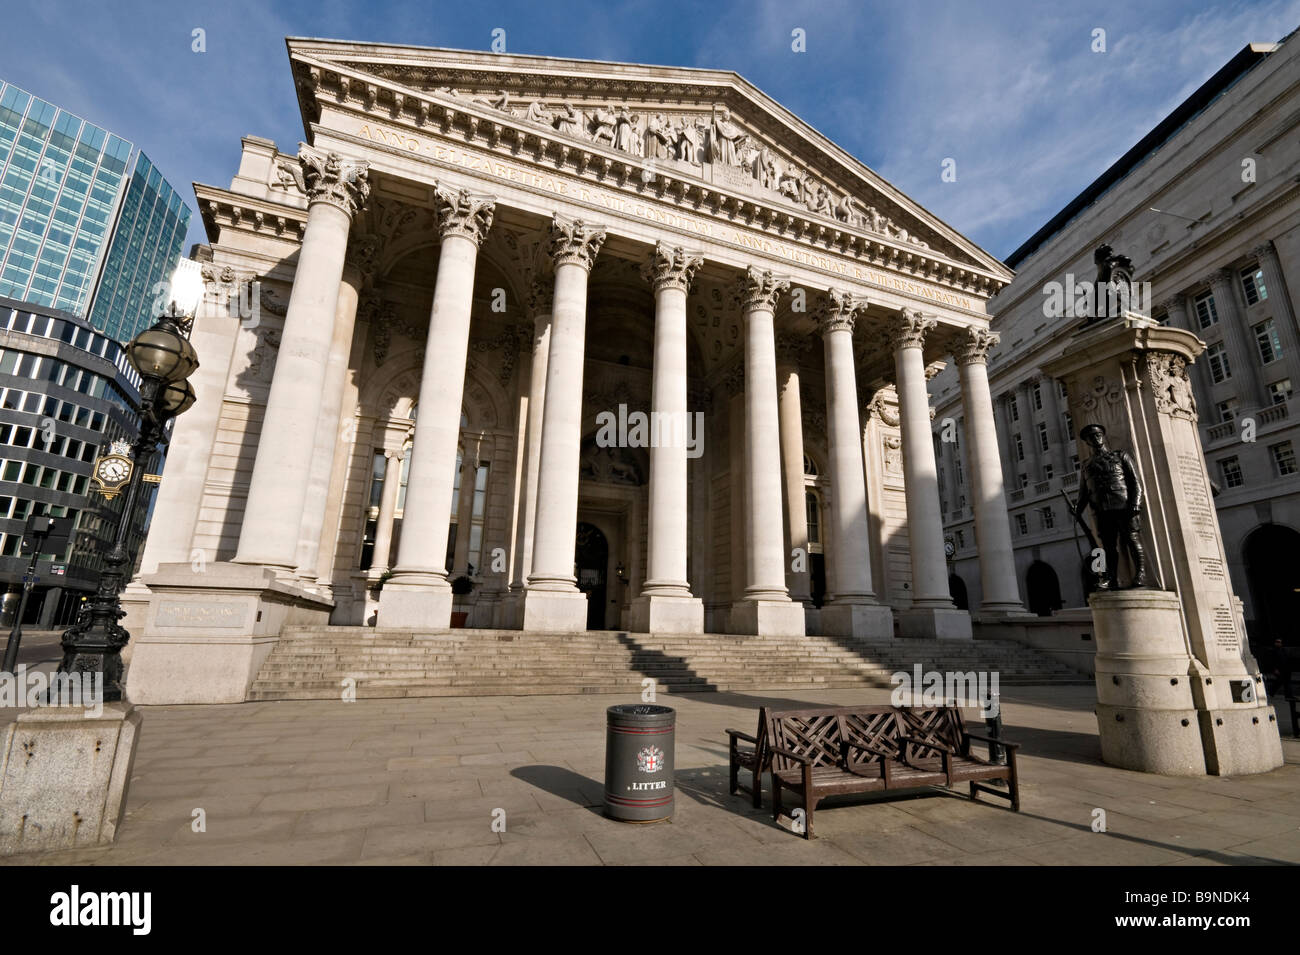 Royal Exchange building opposite the Bank of England - Stock Image